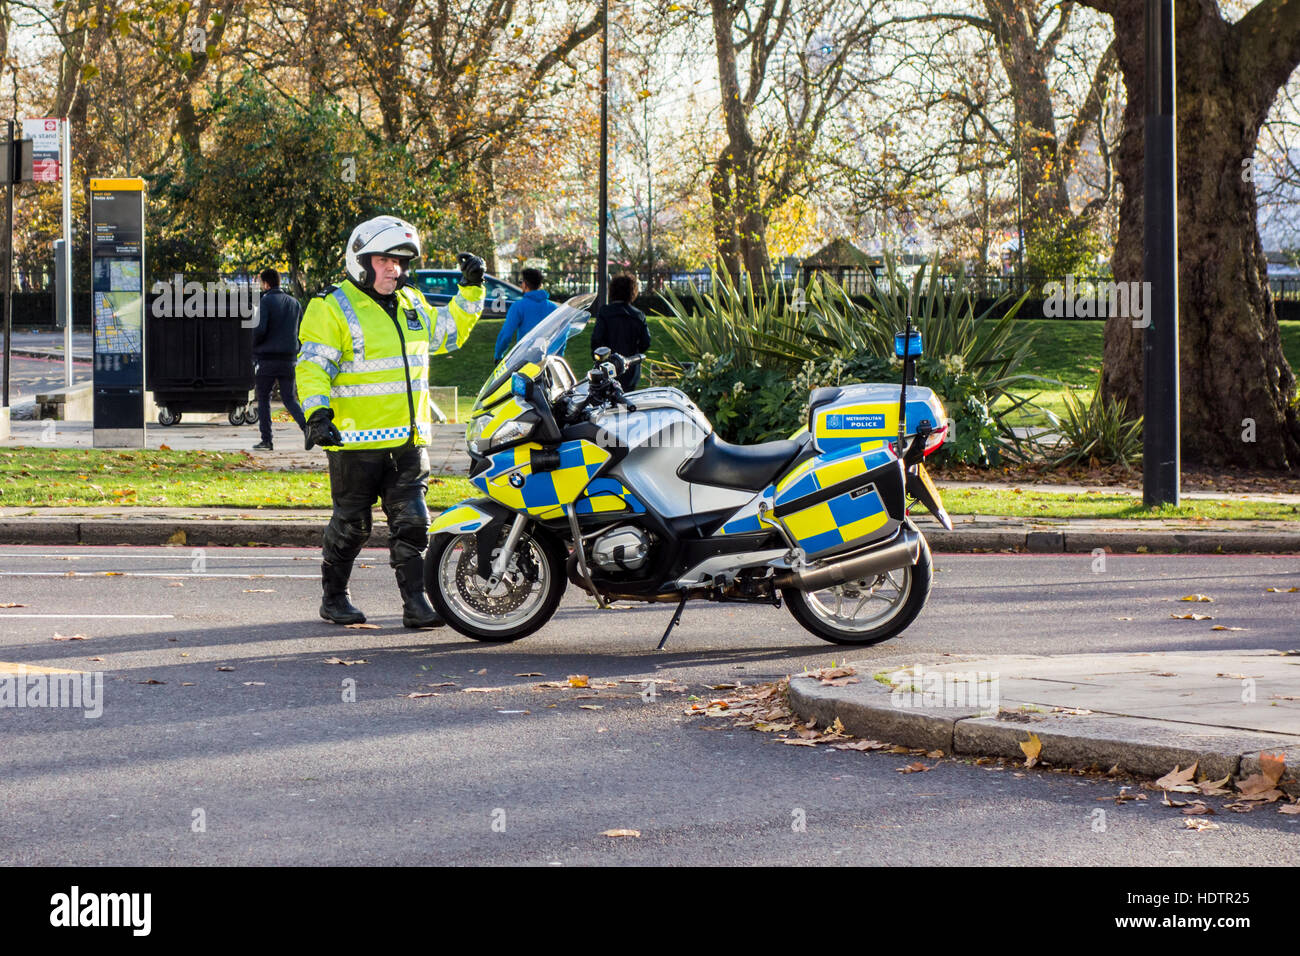 Police officer directing traffice at Marble Arch roundabout, London, UK - Stock Image